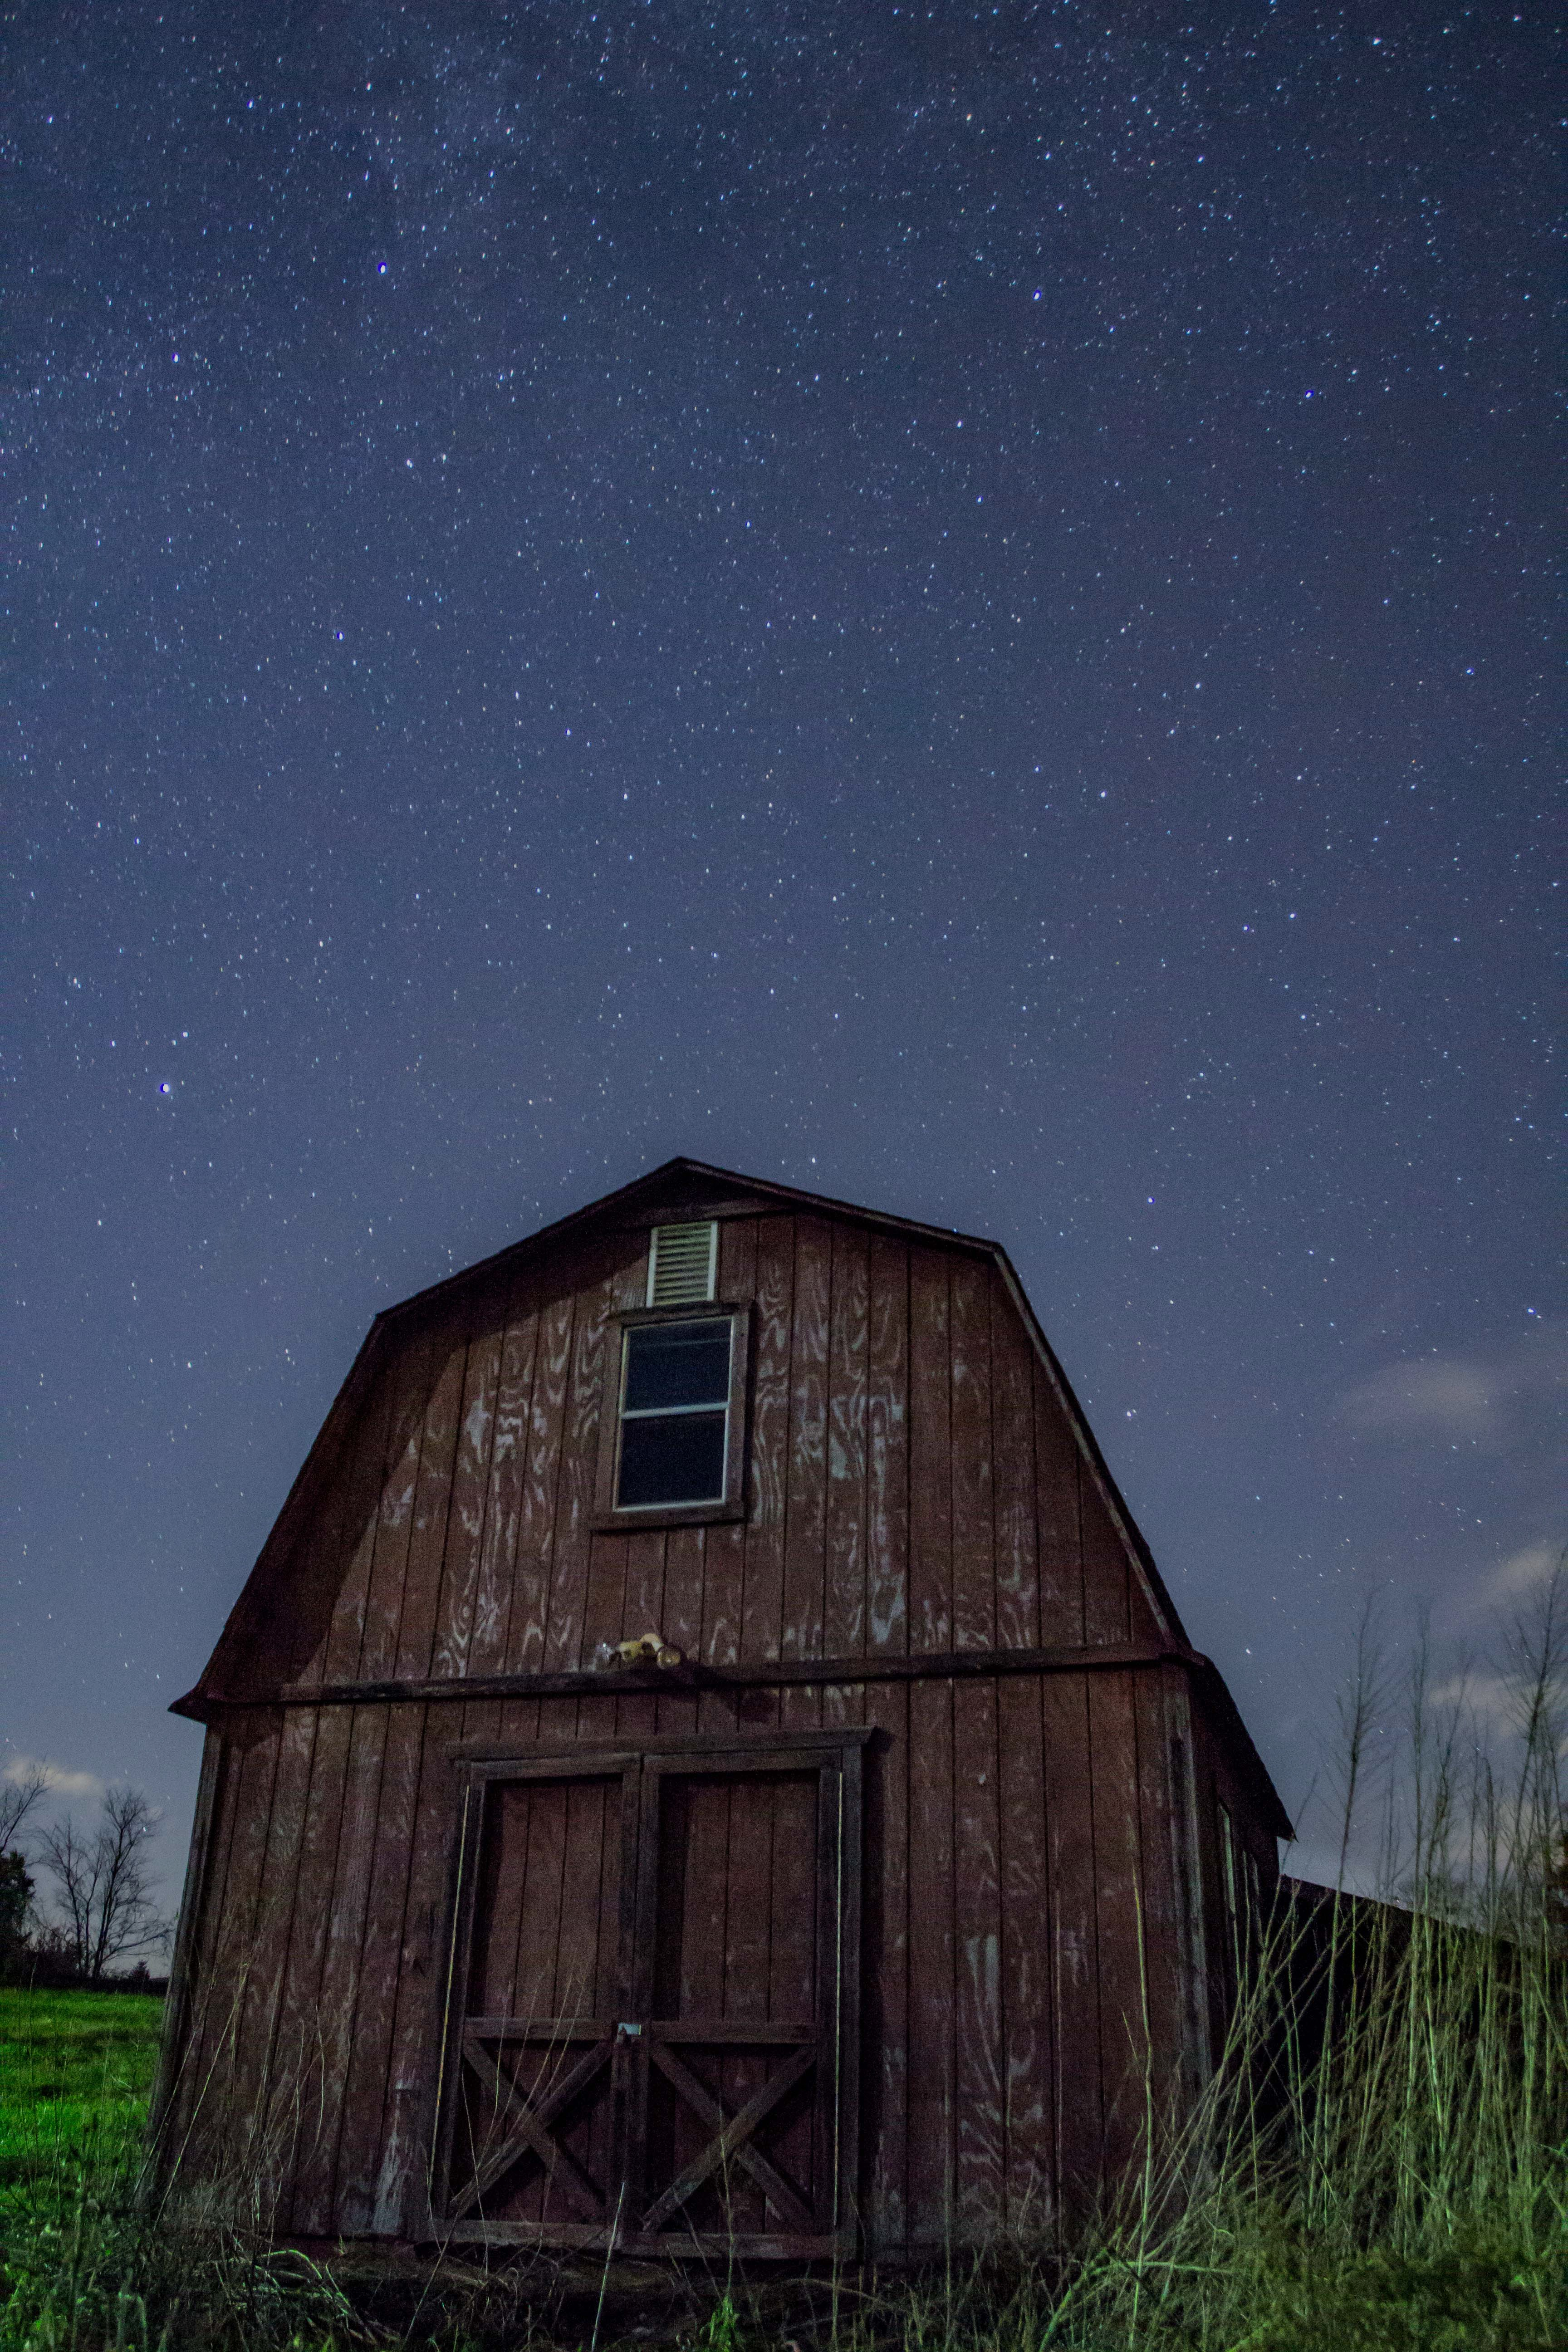 brown wooden barn under starry sky